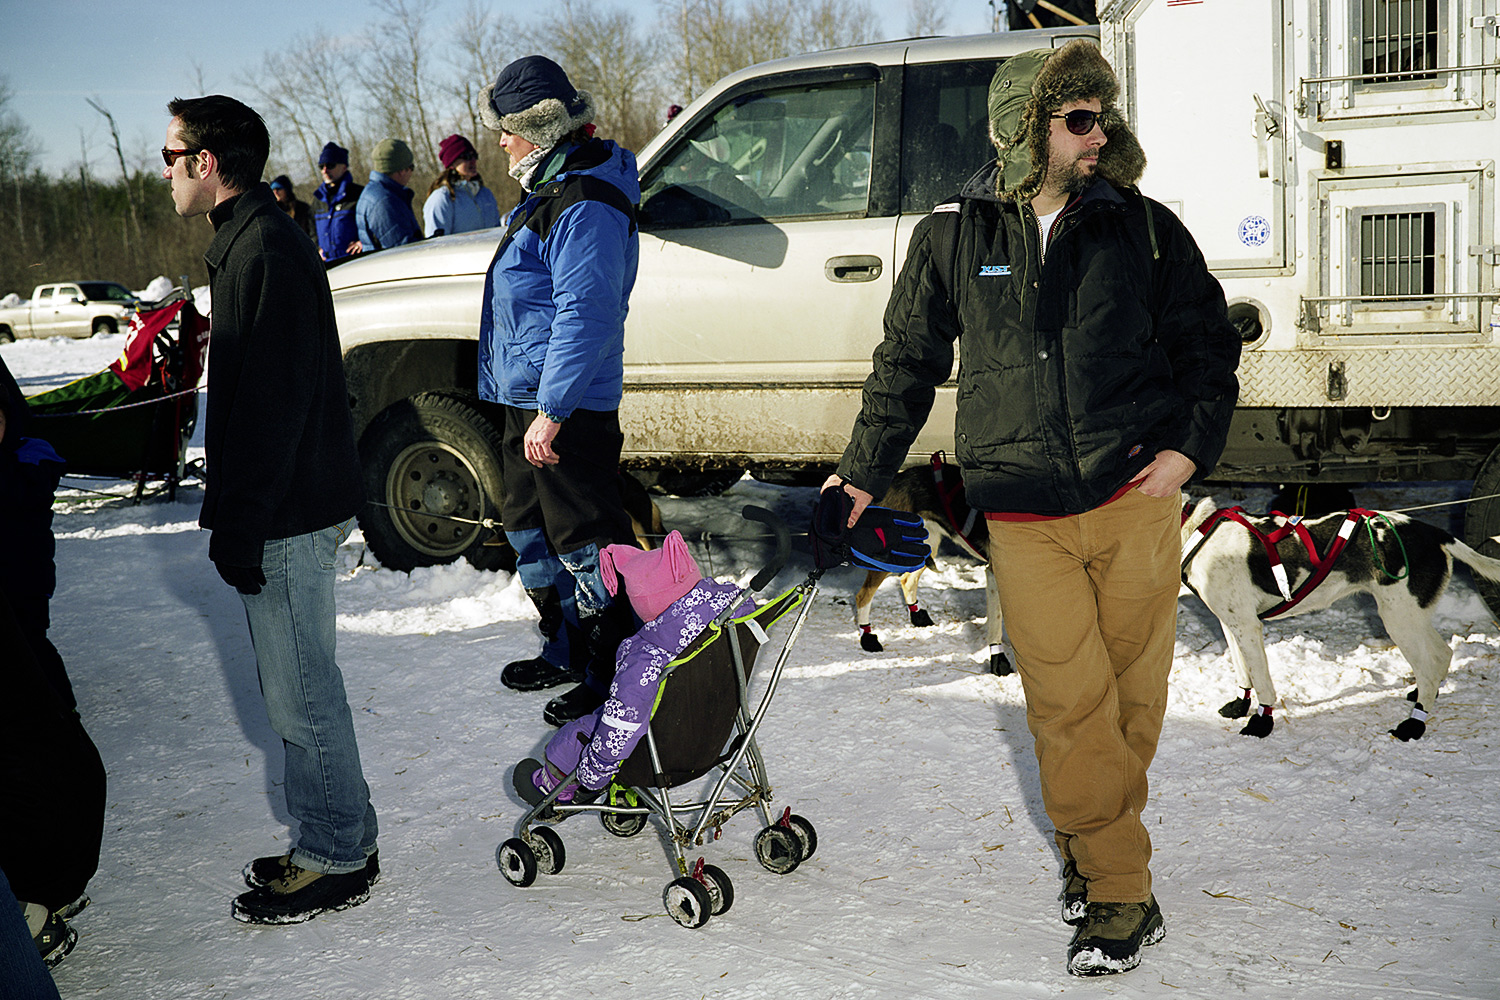 A Man Waits With A Child In A Stroller, January 2011